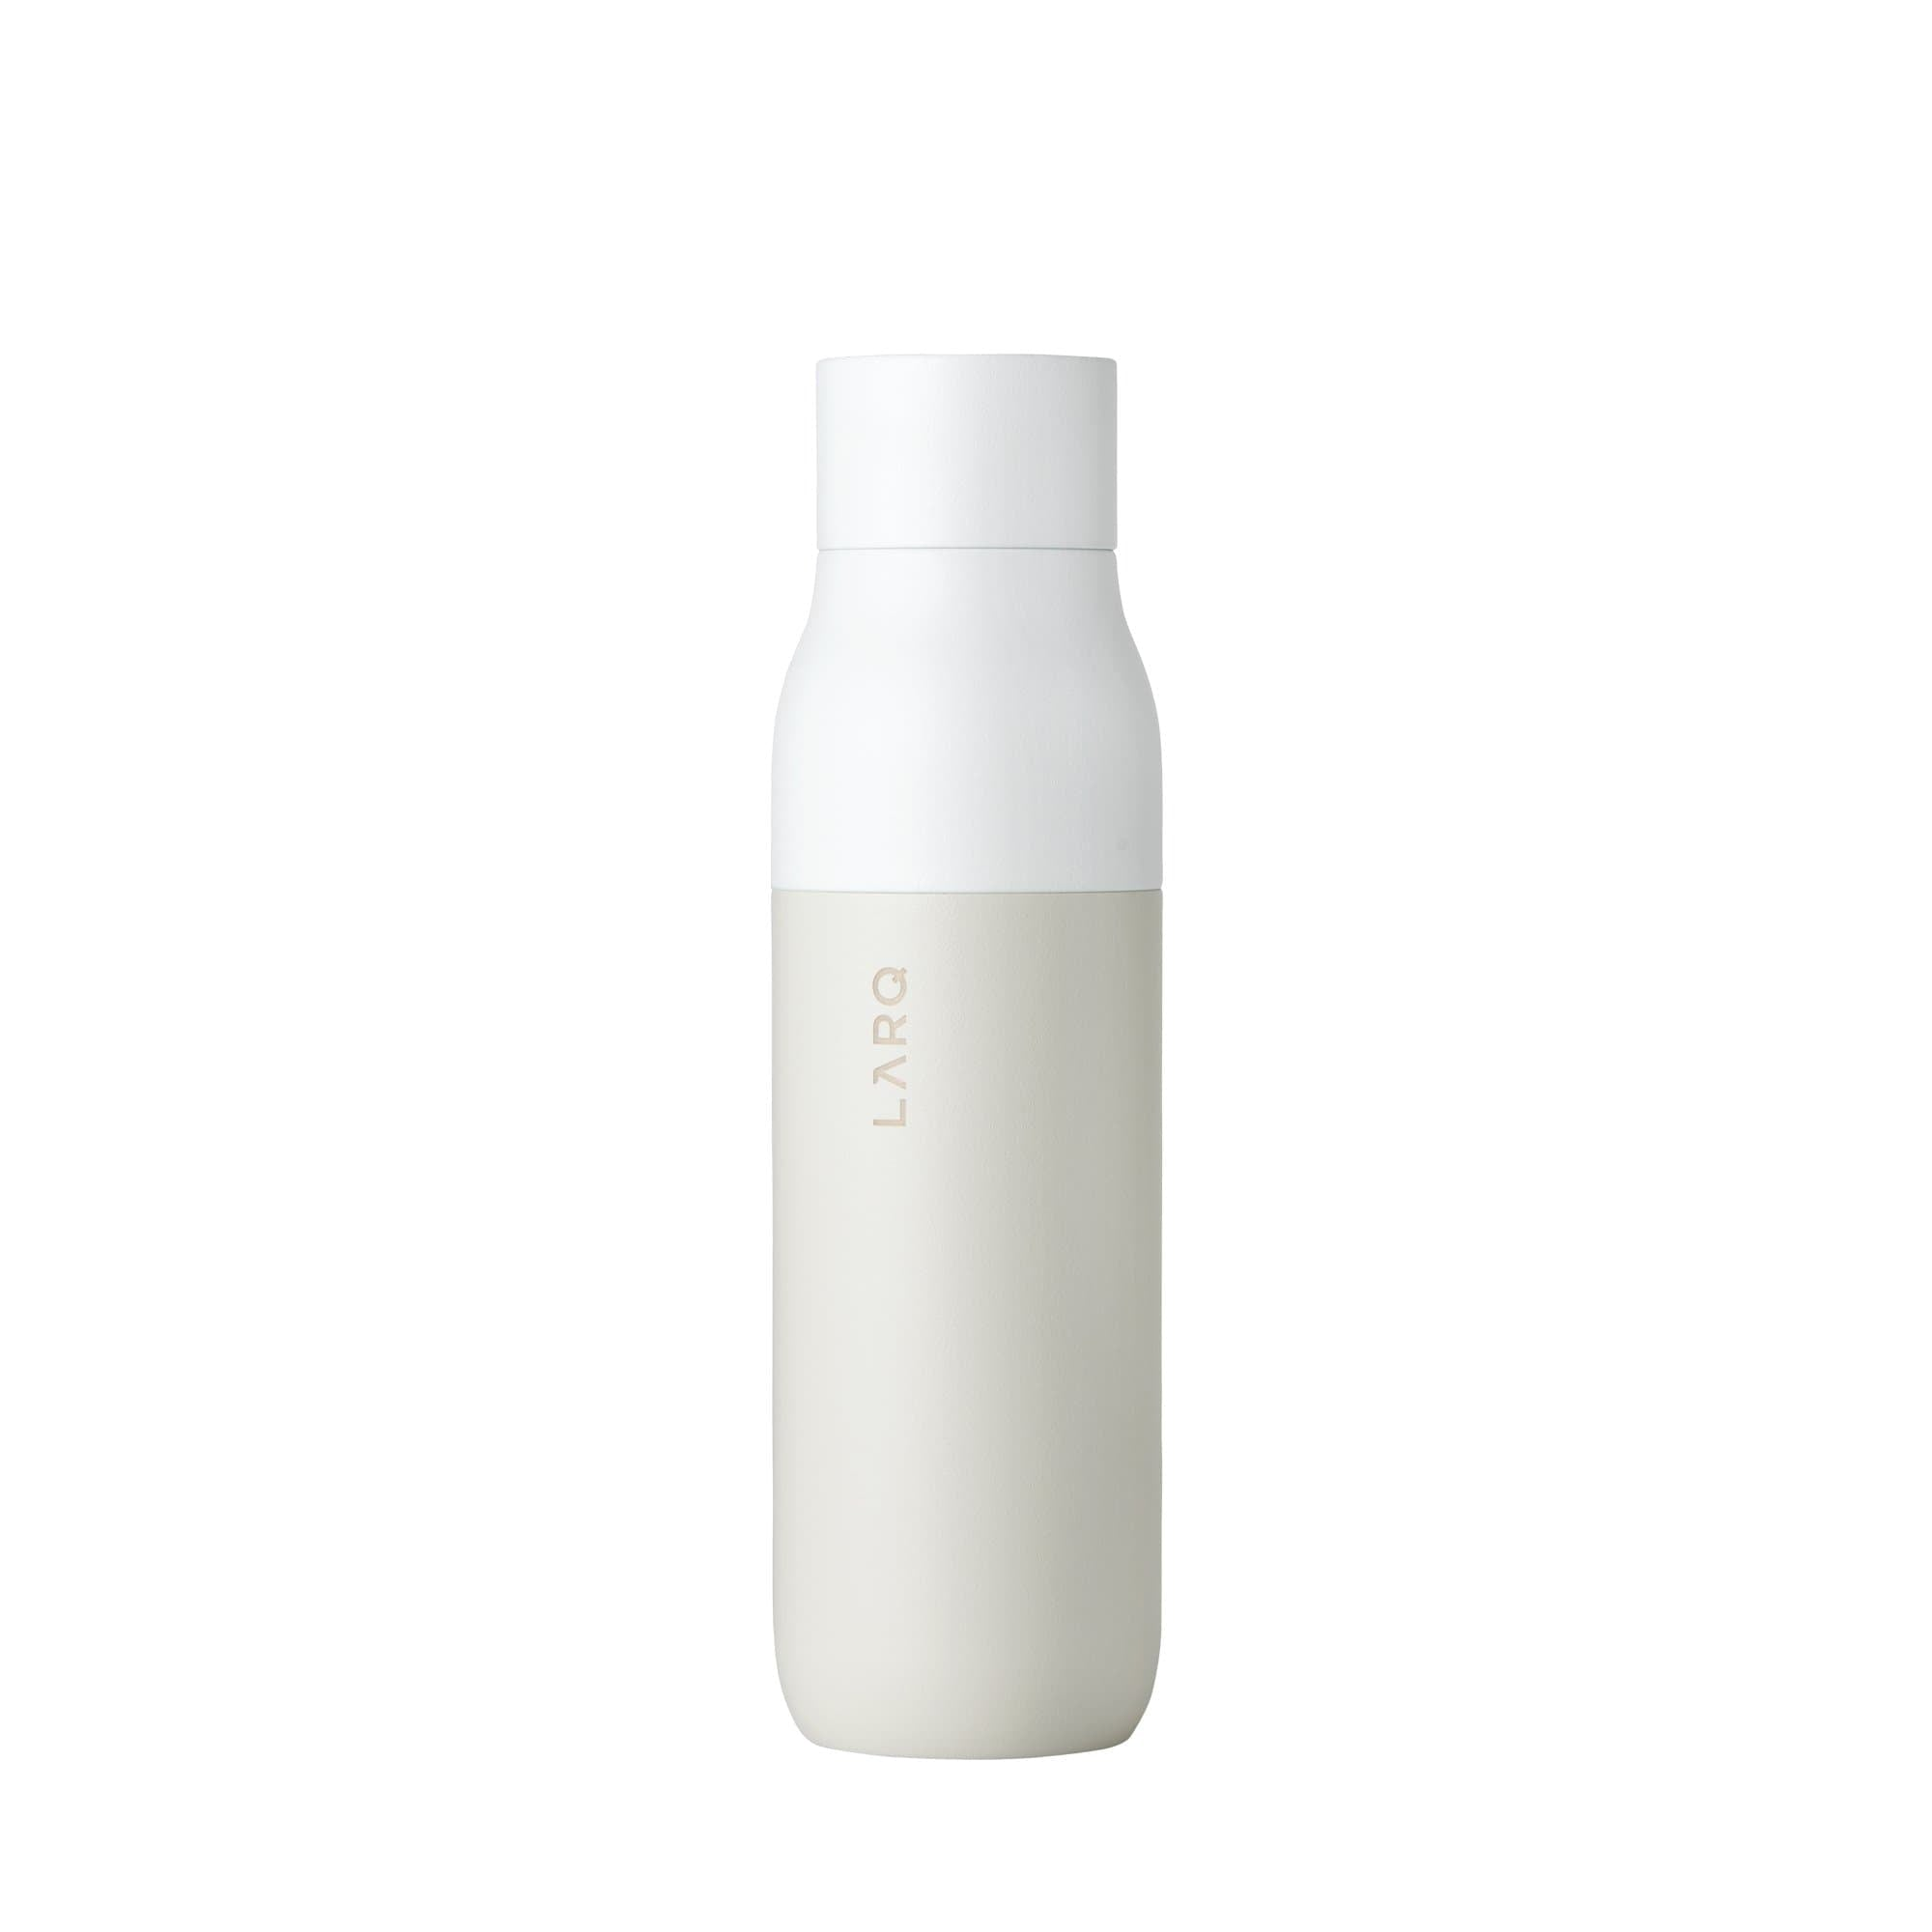 LARQ Water Bottles Granite White Bottle